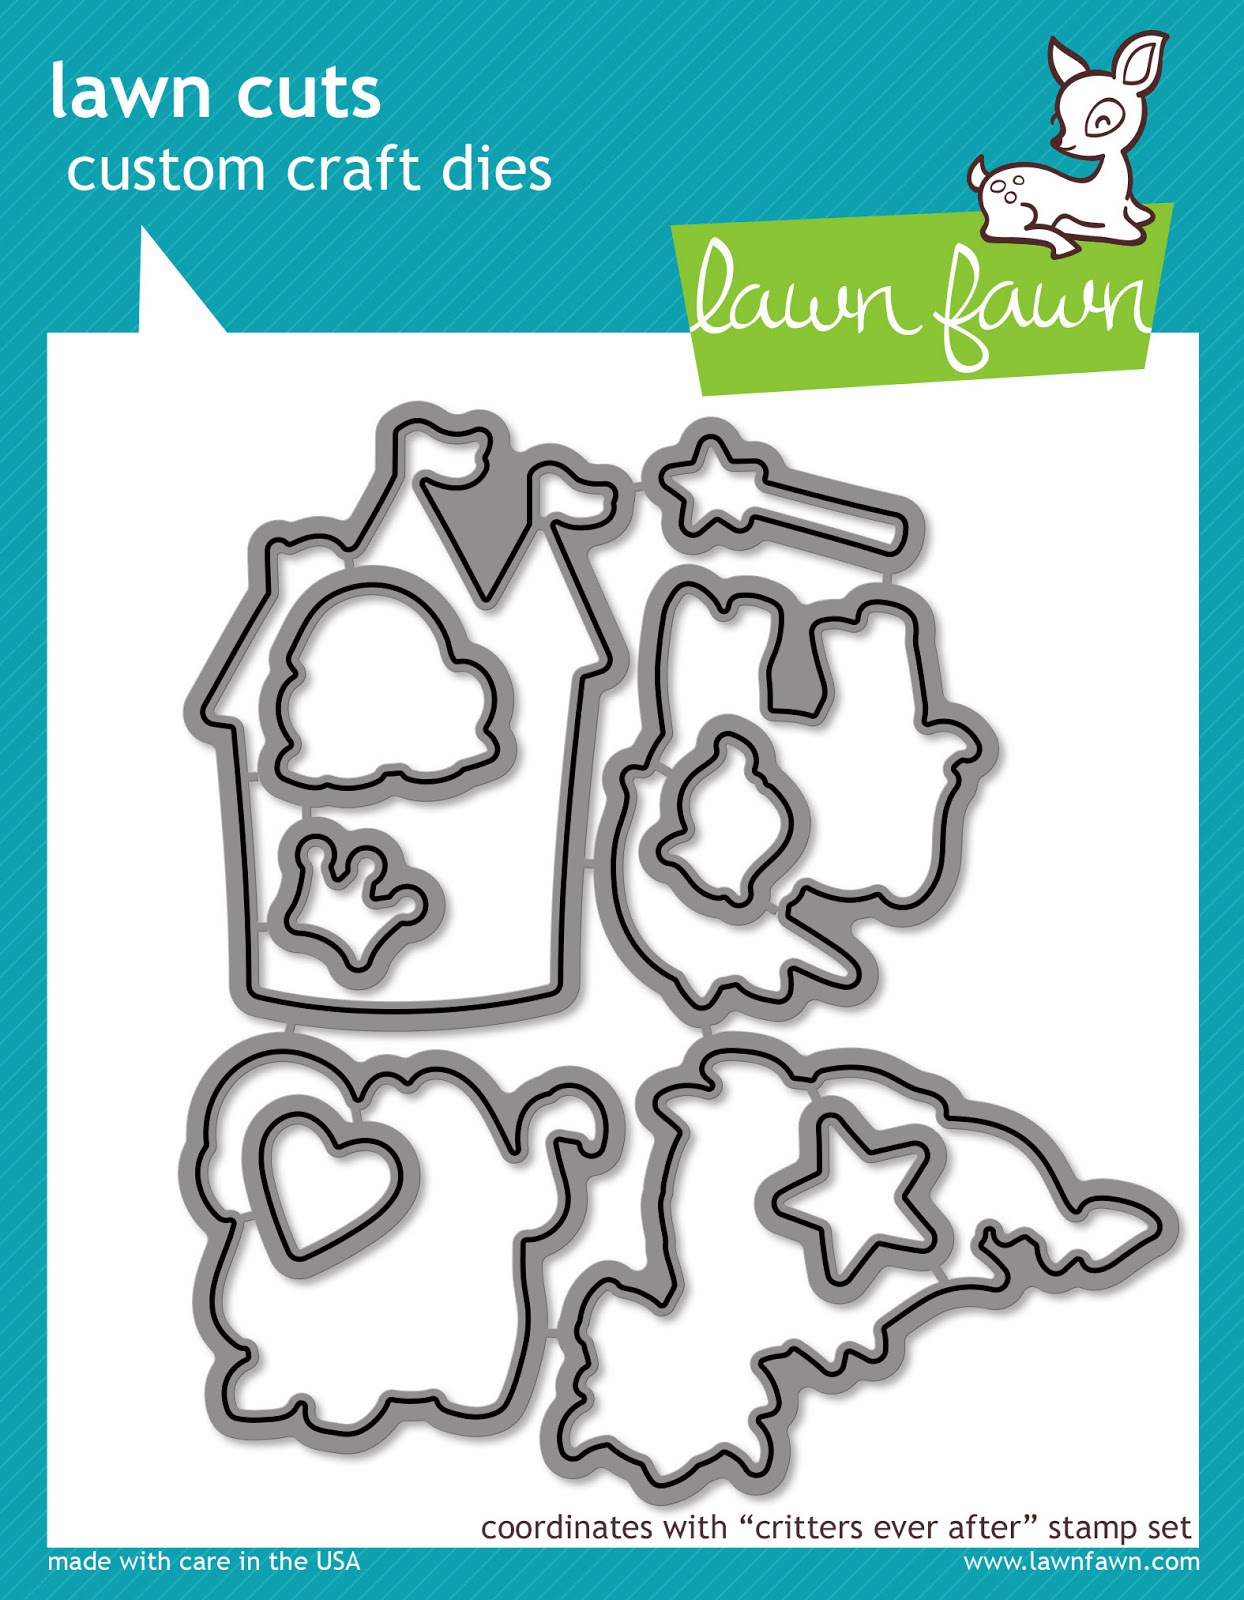 http://www.lawnfawn.com/collections/new-products/products/critters-ever-after-lawn-cuts